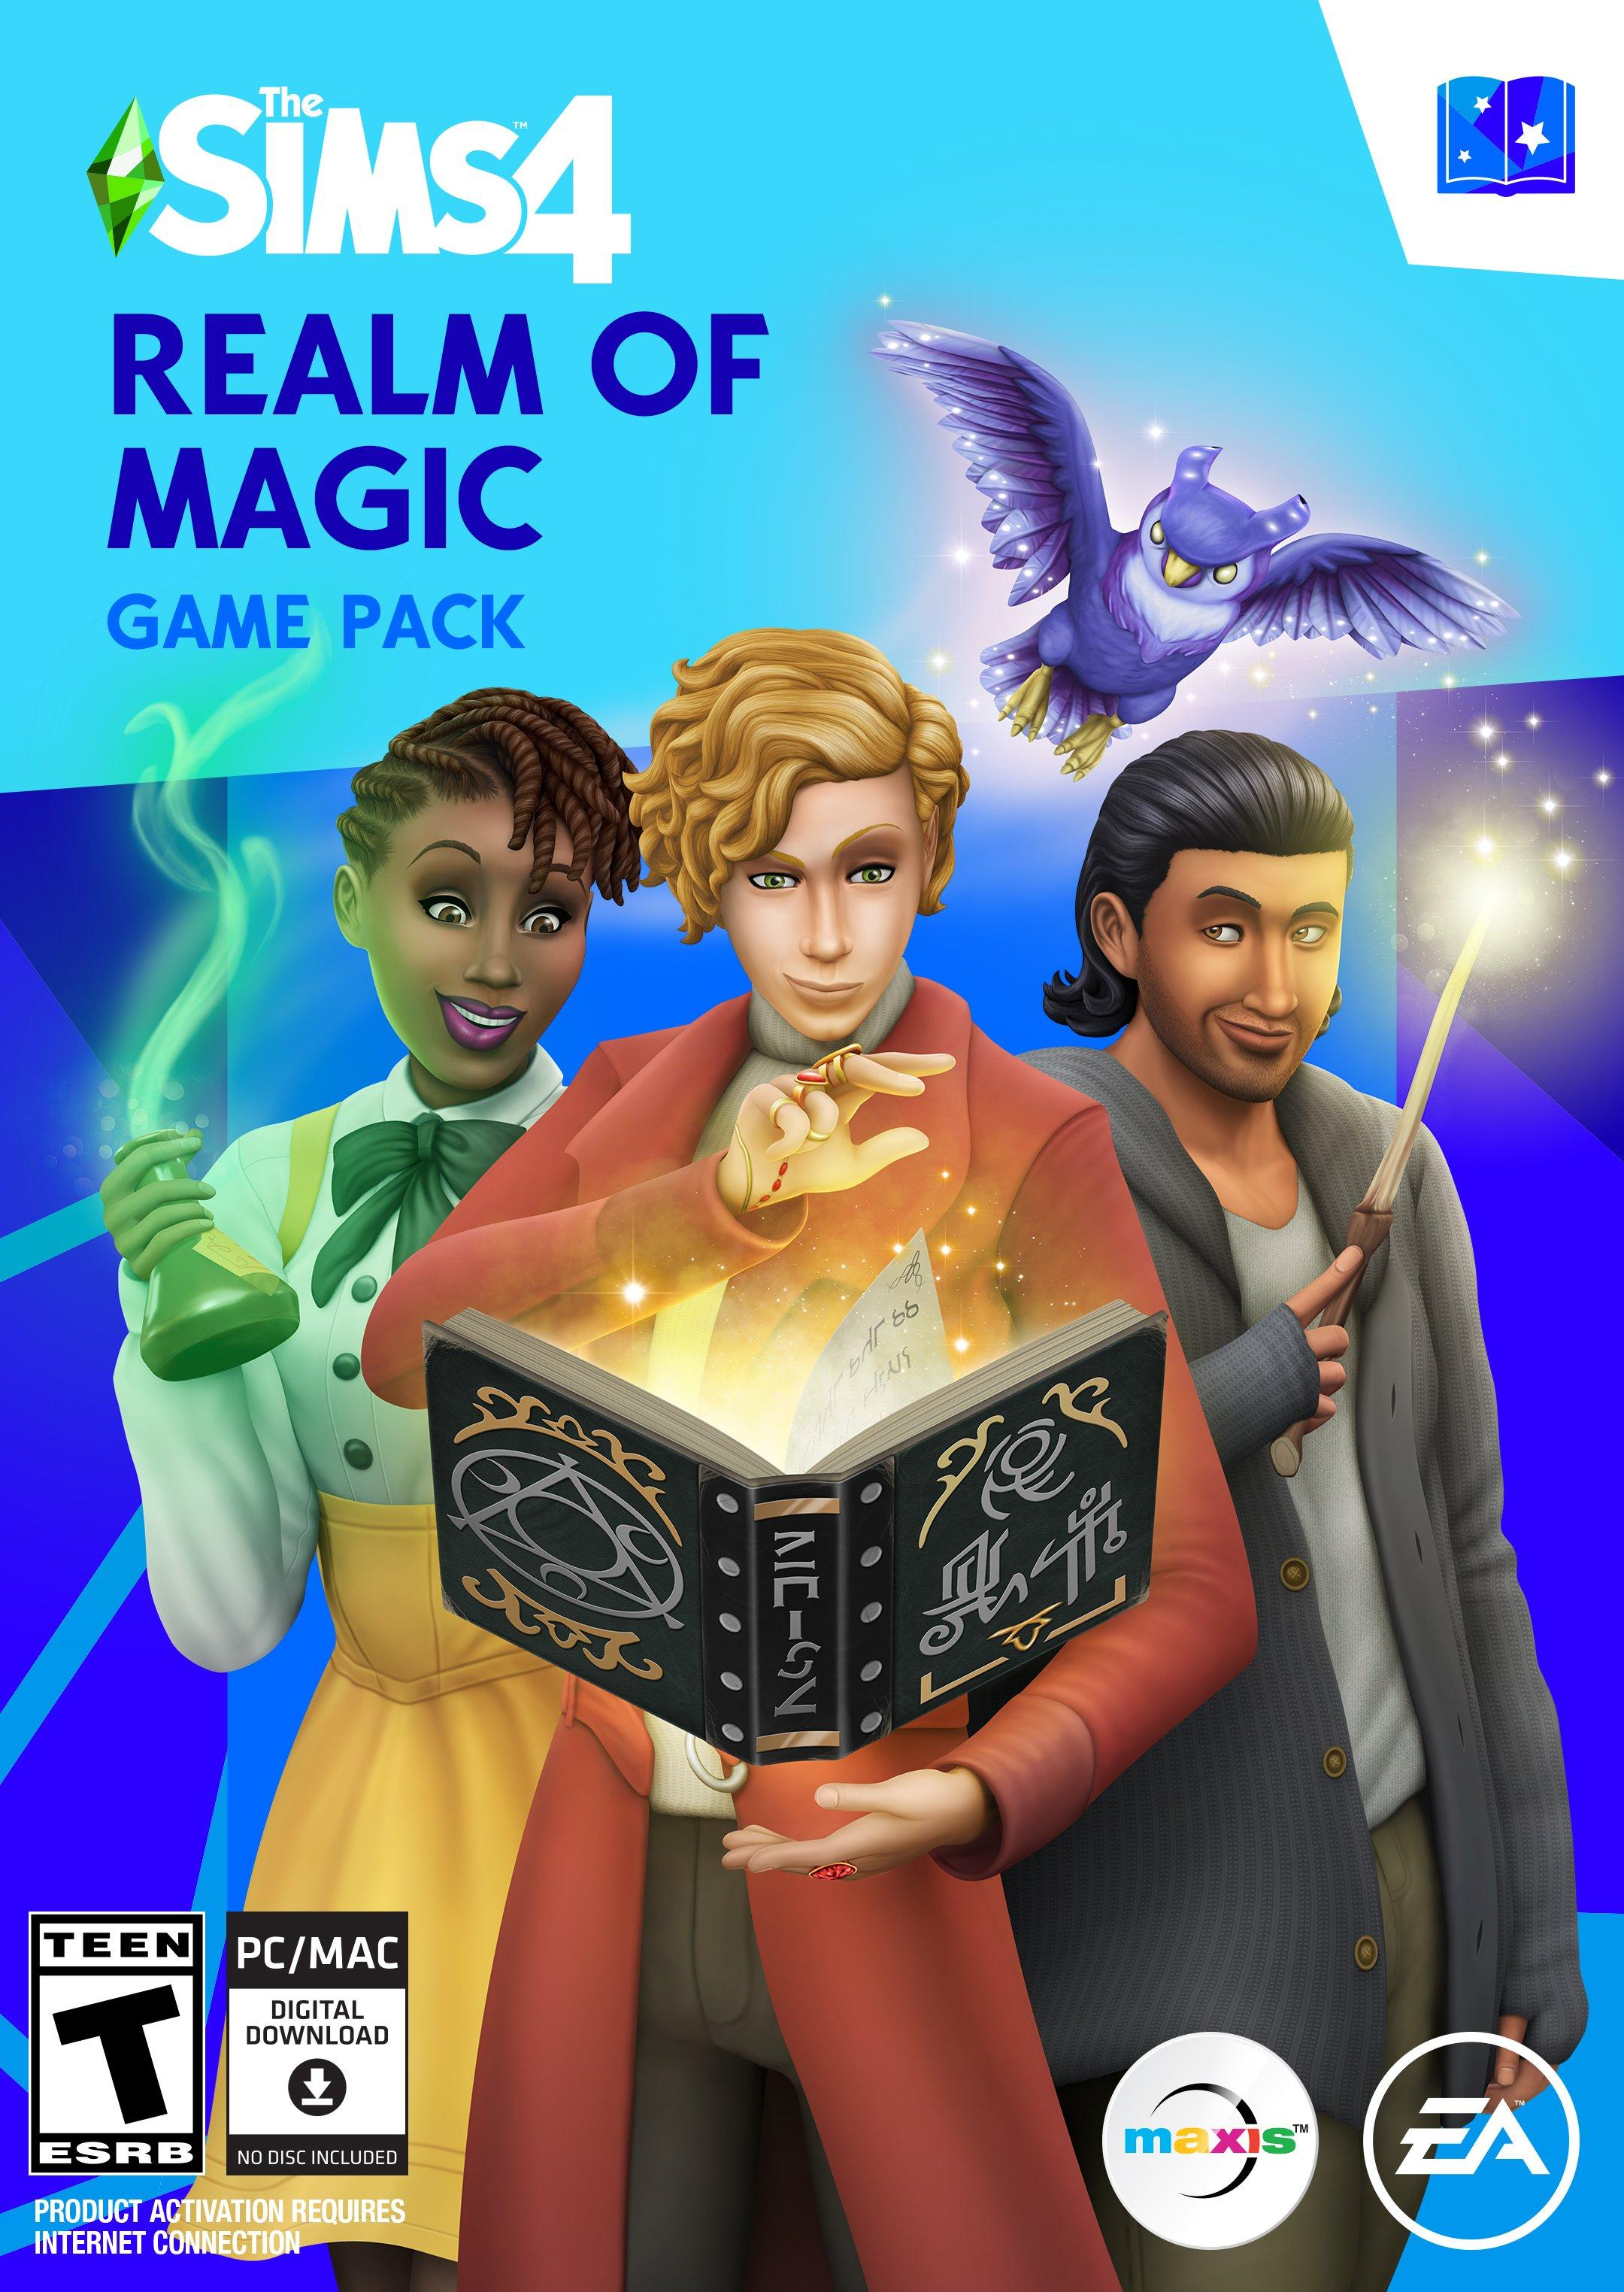 The-Sims-4-Realm-of-Magic-Serial-Key-Generator